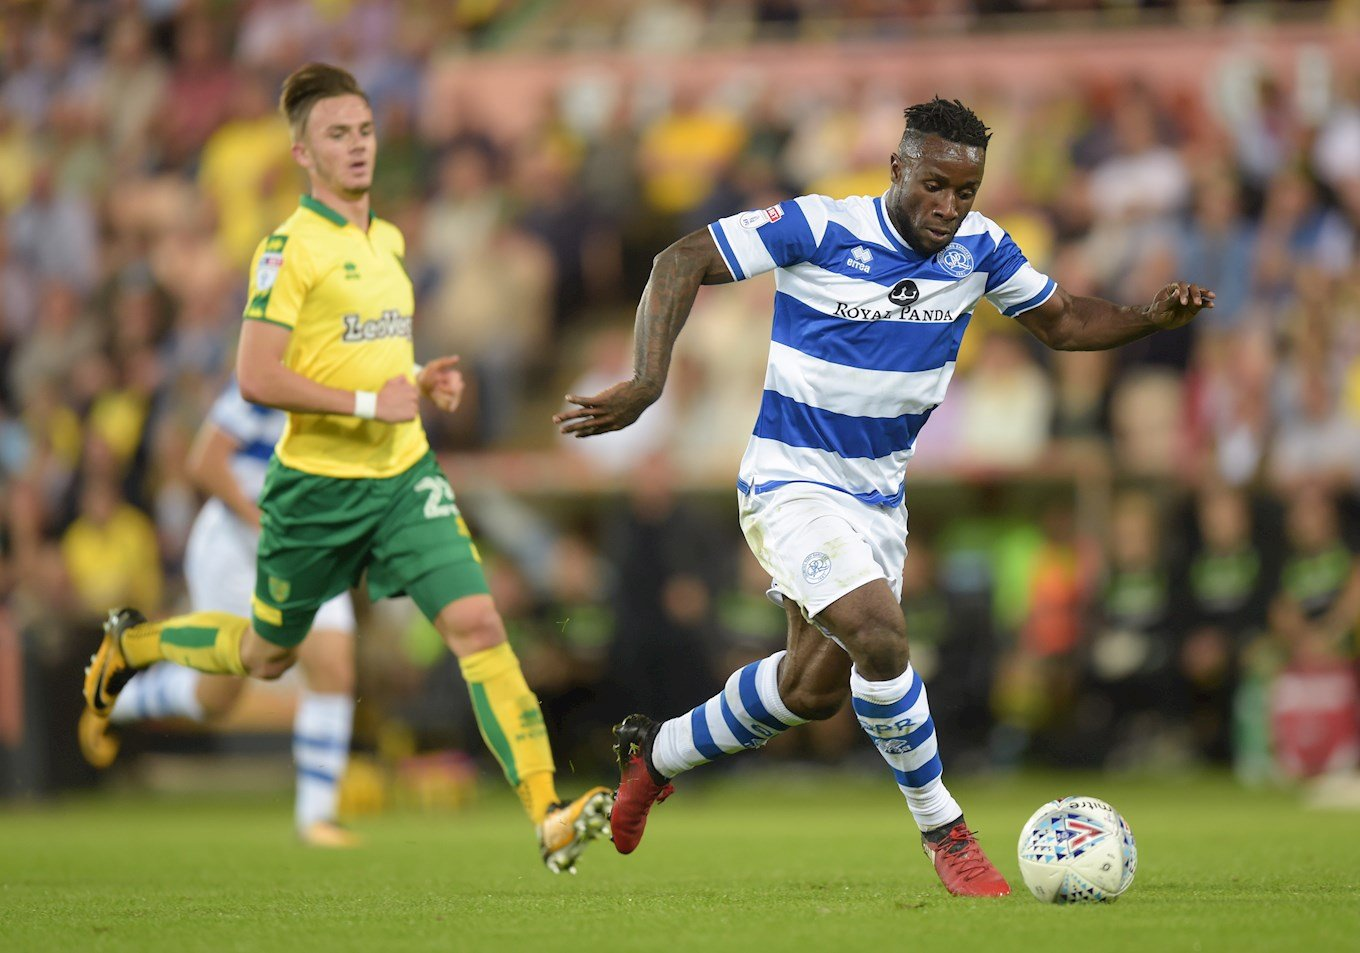 Kazenga LuaLua on the run during a Championship game at Norwich while on loan with QPR